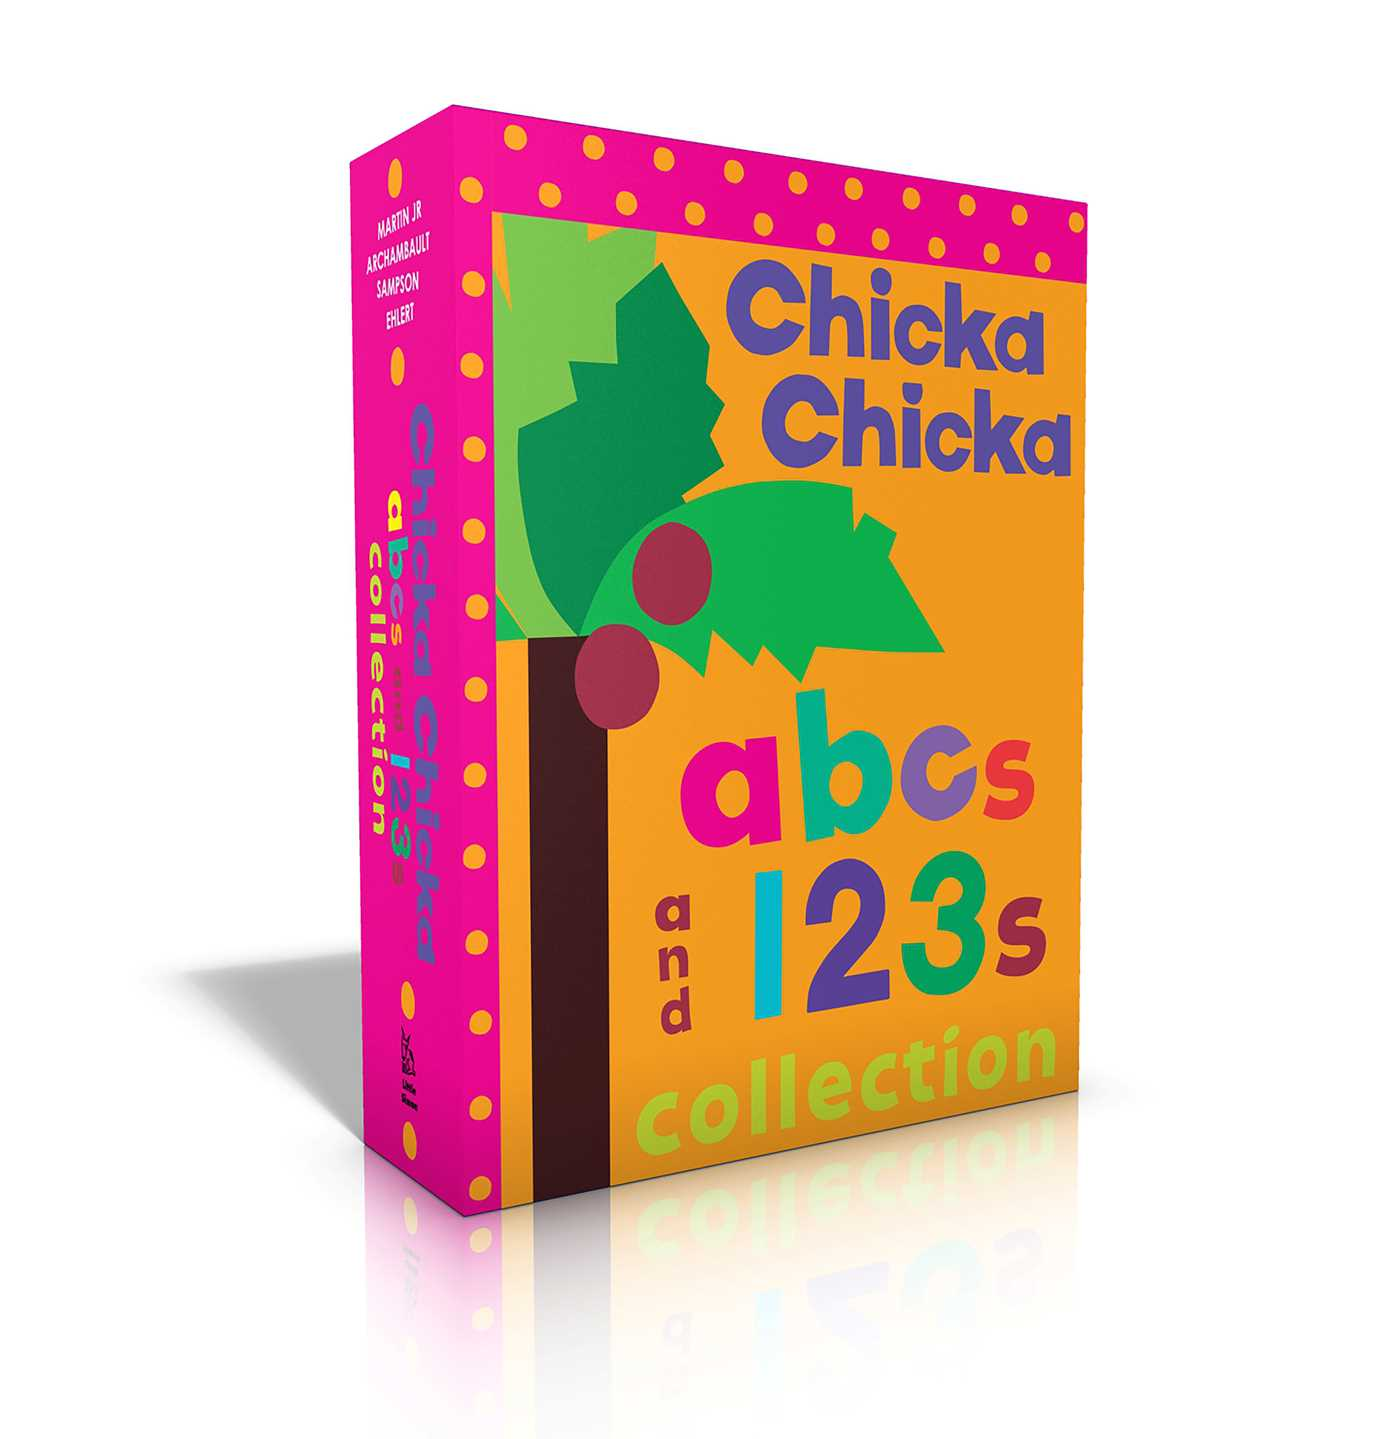 Chicka chicka abcs and 123s collection 9781534425200 hr